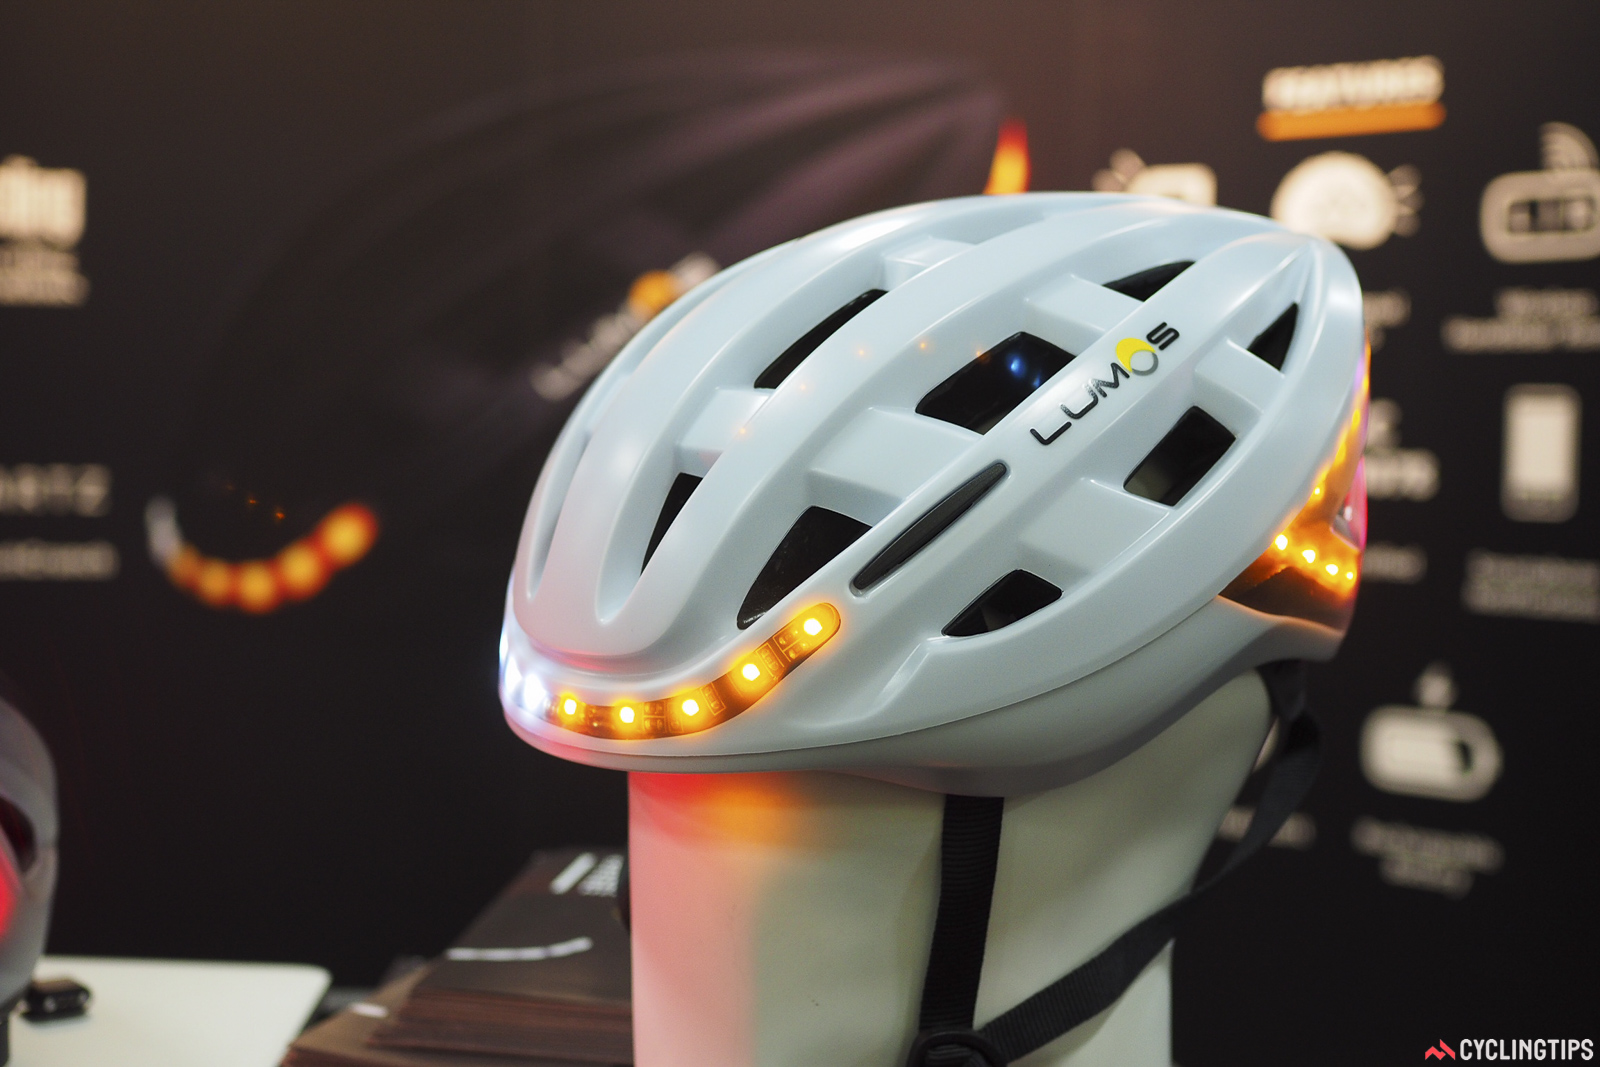 Upstart helmet company Lumos showed off this fully lit helmet, complete with front and rear LED lights as well as left and right turn indicators.